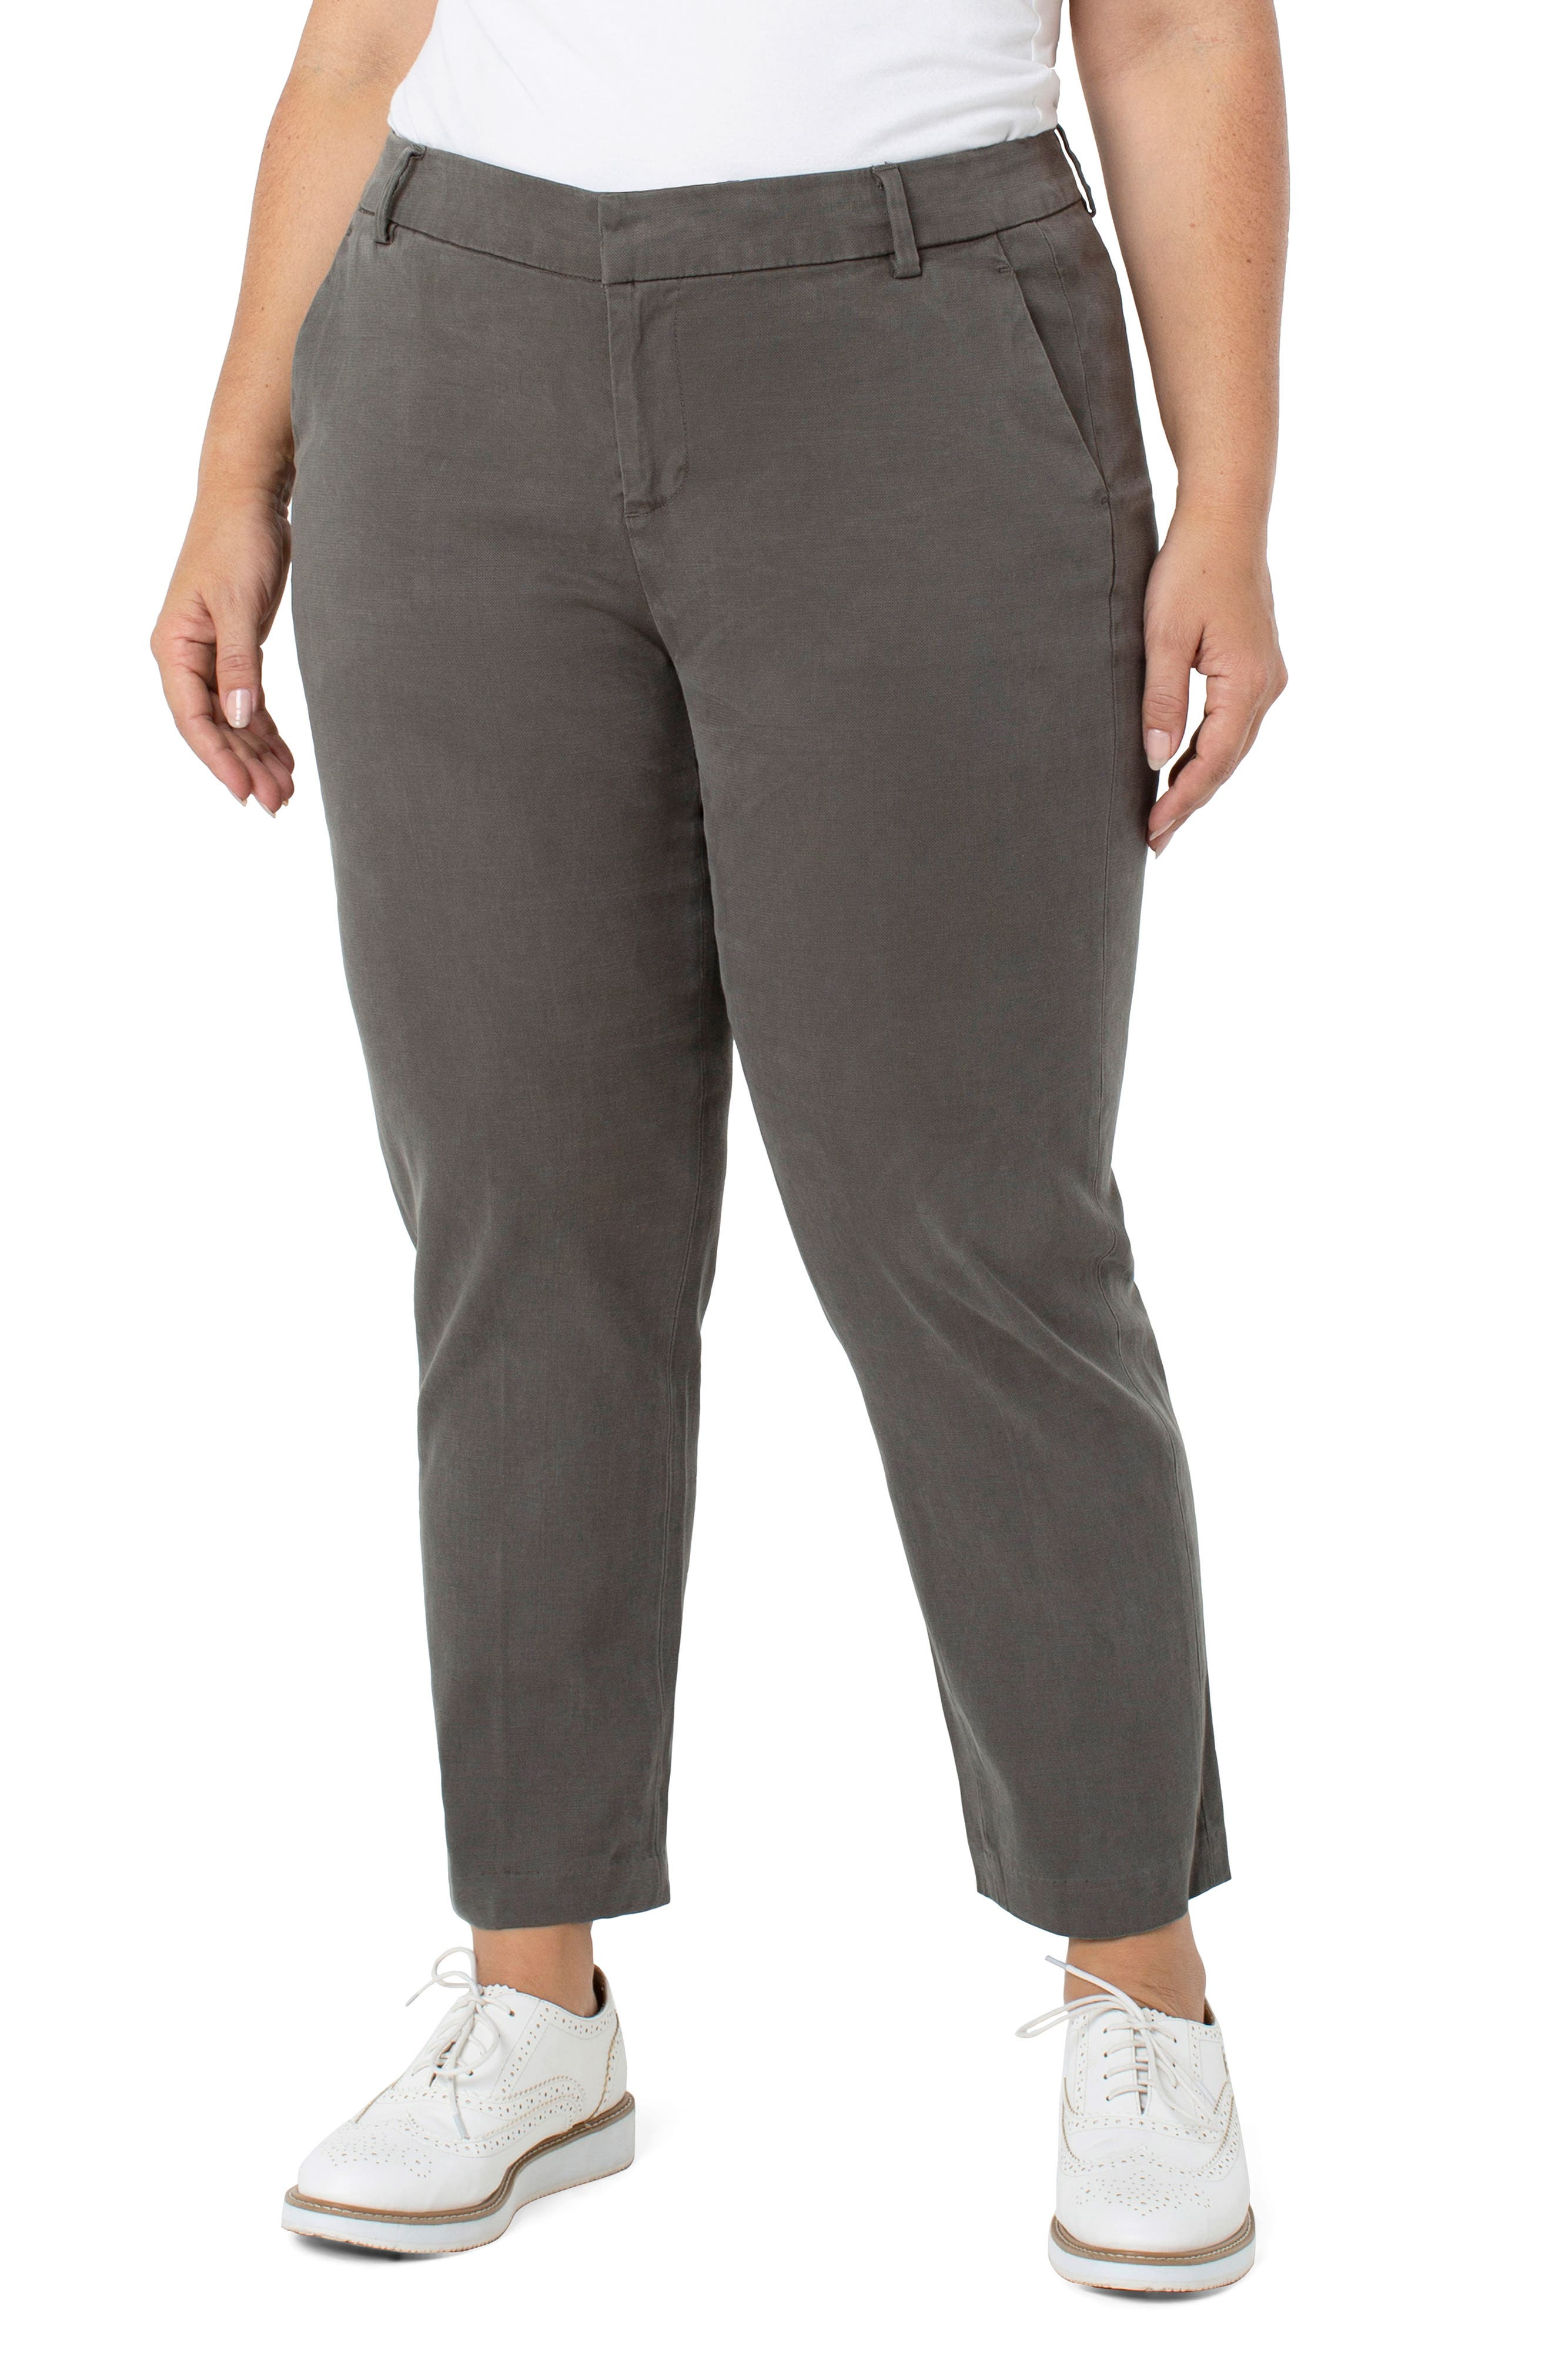 Kelsey Knit Ankle Trousers